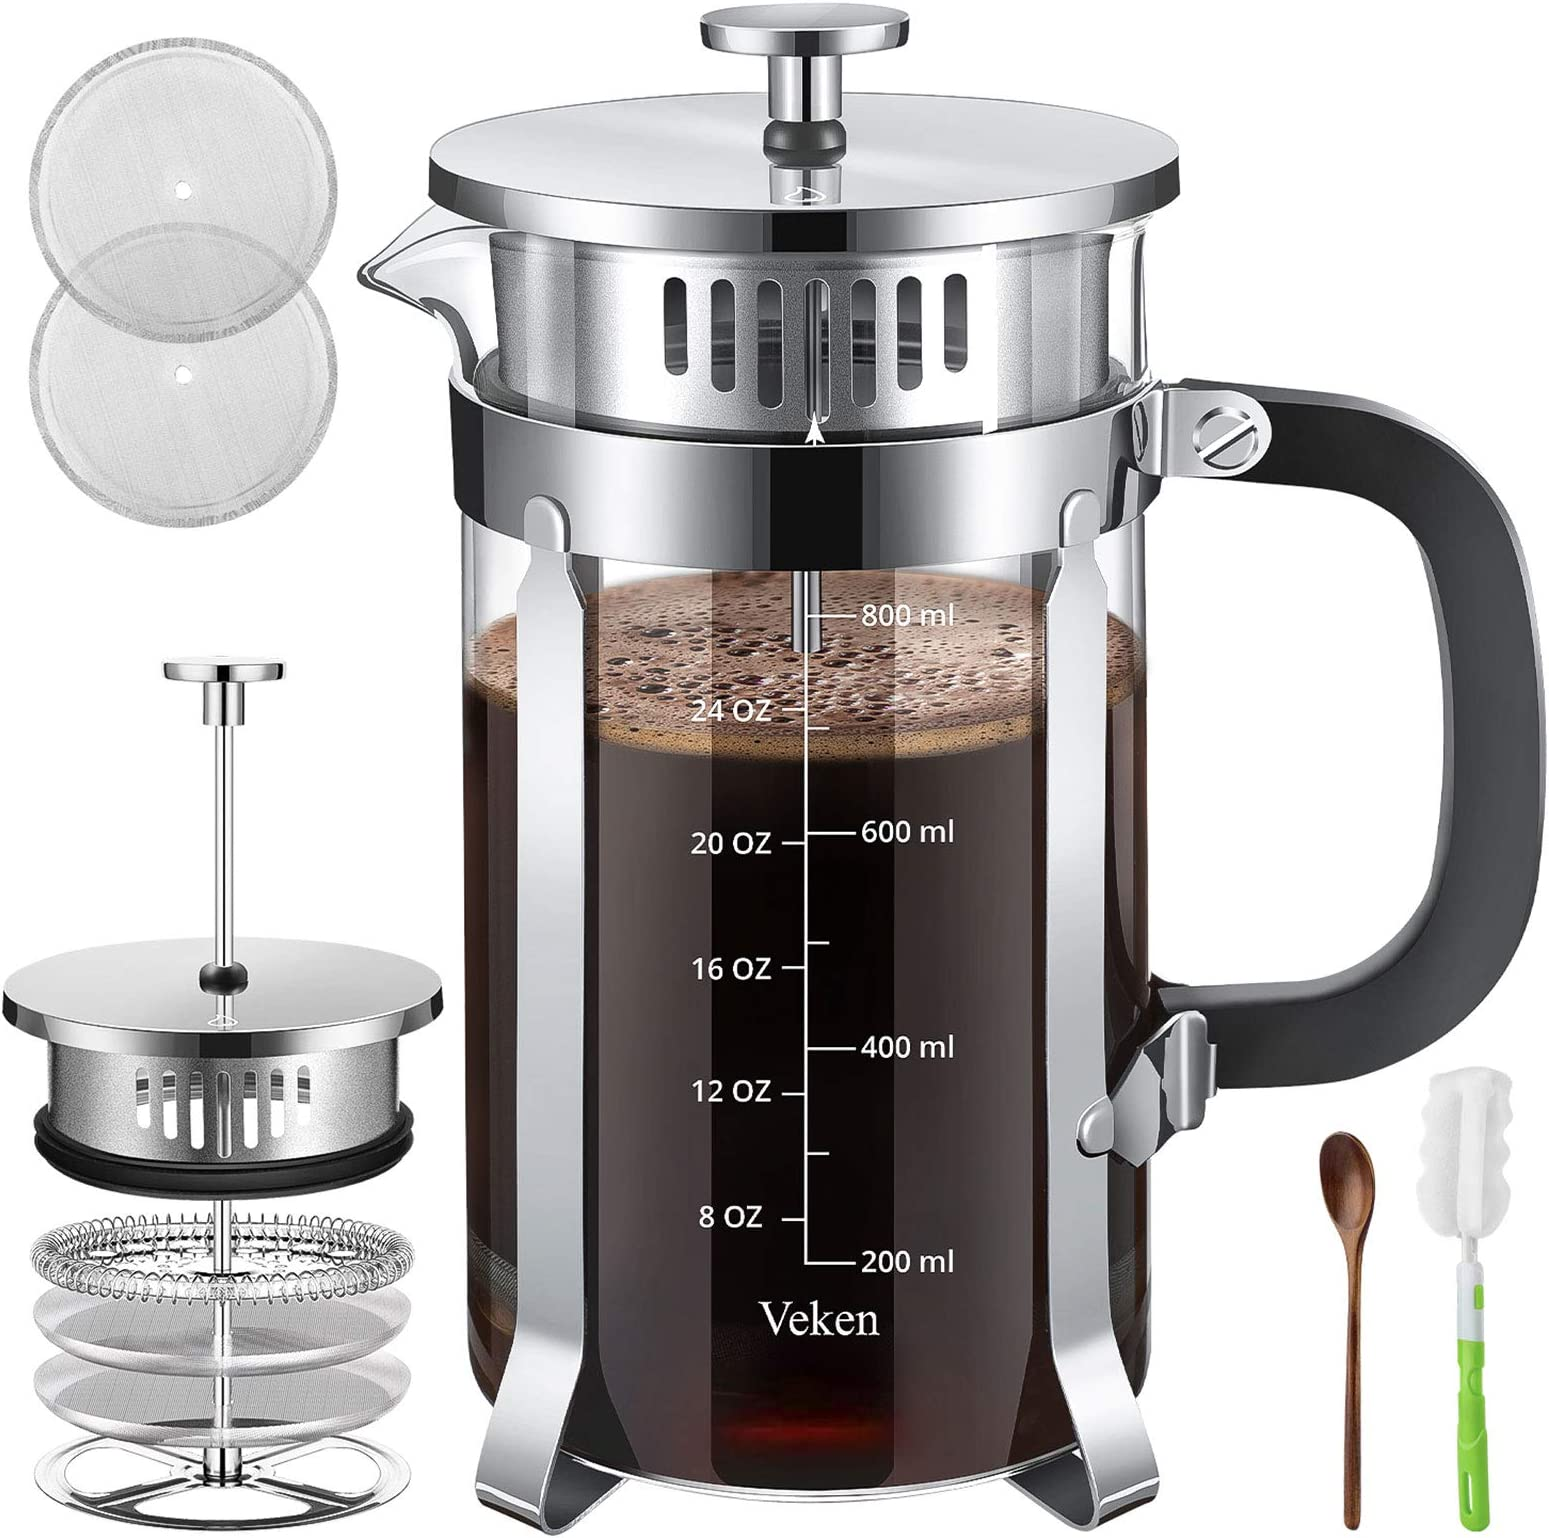 Veken French Press Coffee Tea Maker for Mothers Day(34 oz), Grandma Birthday Gifts 304 Stainless Steel Coffee Press with 4 Level Filtration System, Thickened Heat Resistant Borosilicate Glass, Silver